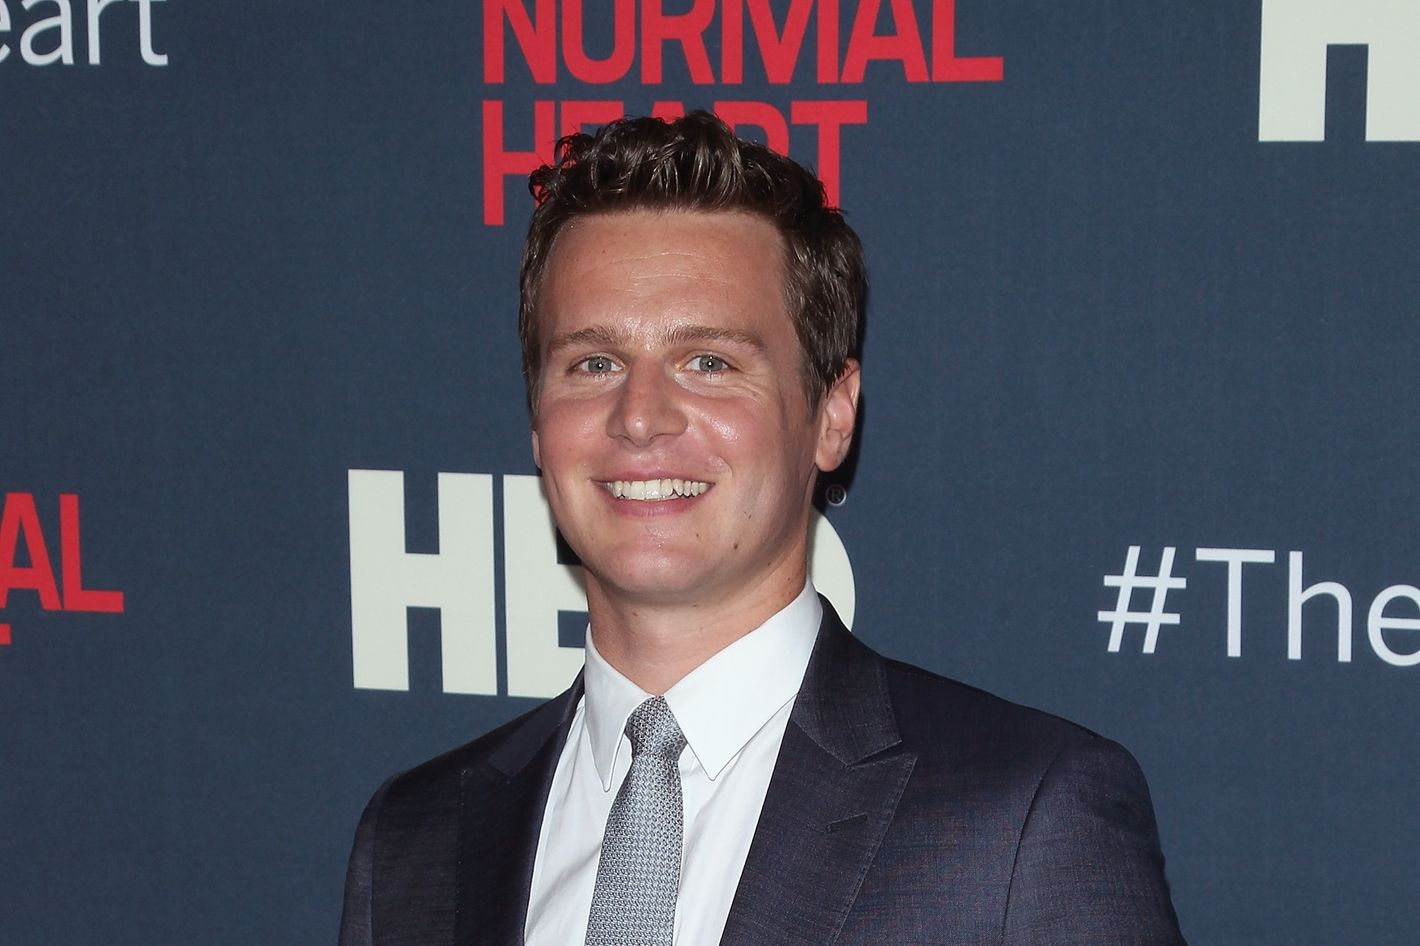 jonathan groff kingjonathan groff instagram, jonathan groff glee, jonathan groff height, jonathan groff lea michele, jonathan groff imdb, jonathan groff girlfriend, jonathan groff tumblr, jonathan groff gif, jonathan groff king george, jonathan groff wiki, jonathan groff little shop of horrors, jonathan groff voice type, jonathan groff partner, jonathan groff late night, jonathan groff king, jonathan groff lea michele wedding, jonathan groff net worth, jonathan groff hamilton, jonathan groff zachary quinto, jonathan groff you'll be back